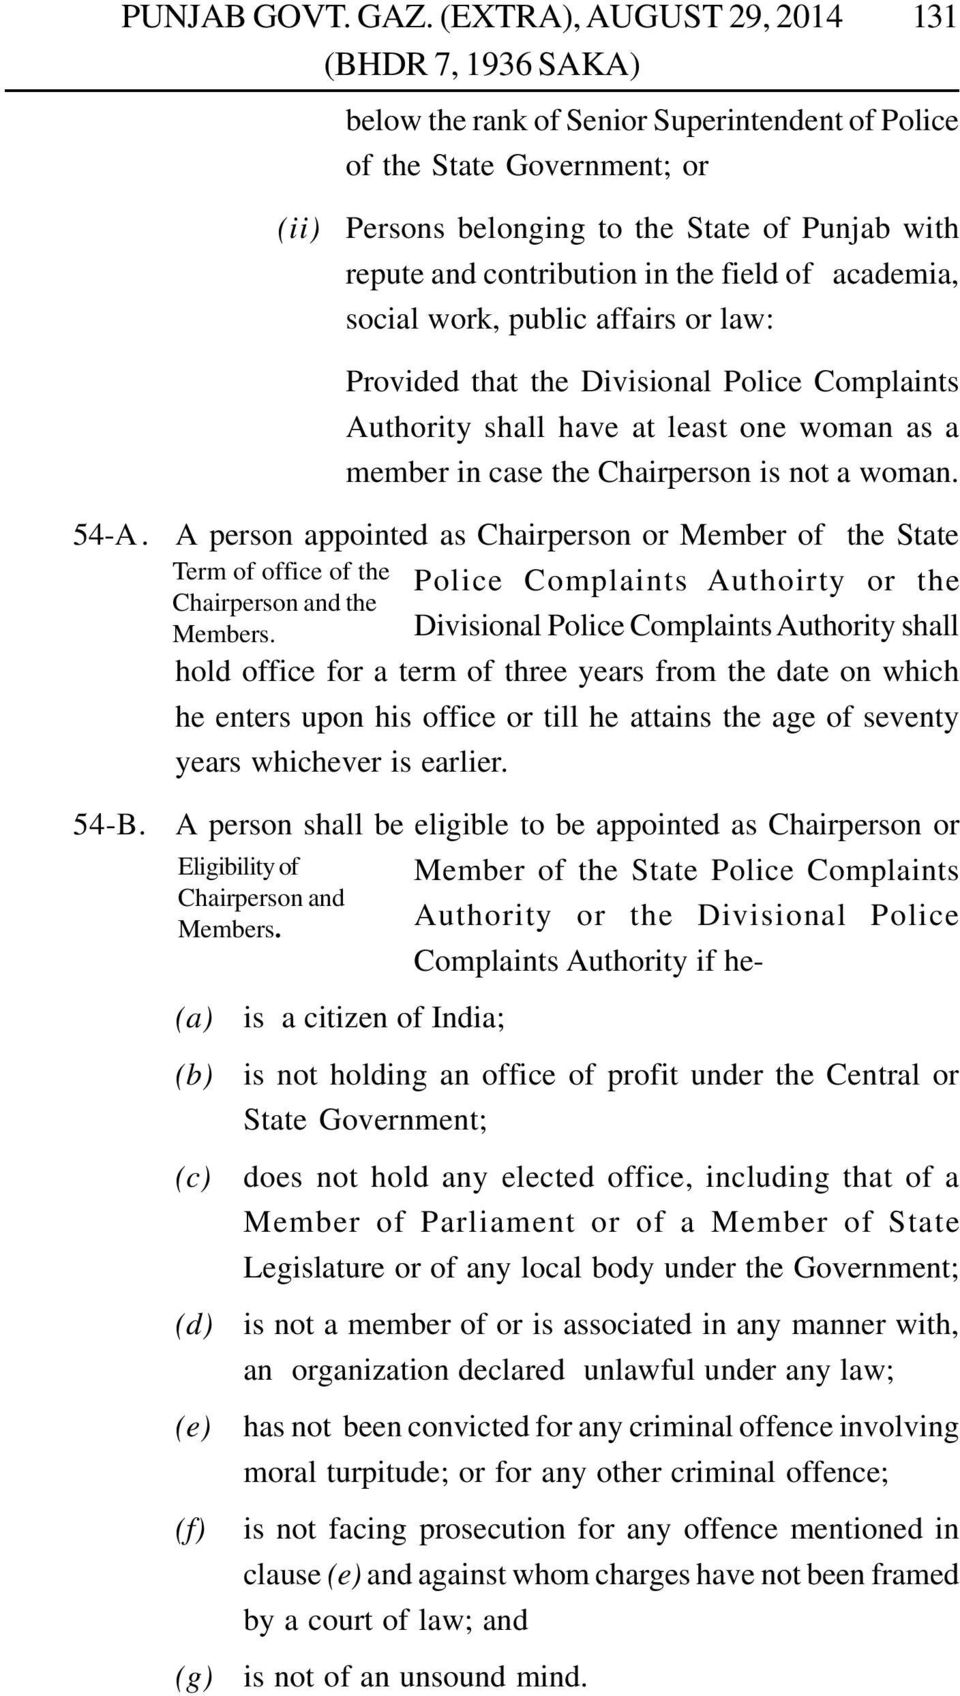 A person appointed as Chairperson or Member of the State Term of office of the Police Complaints Authoirty or the Chairperson and the Members.